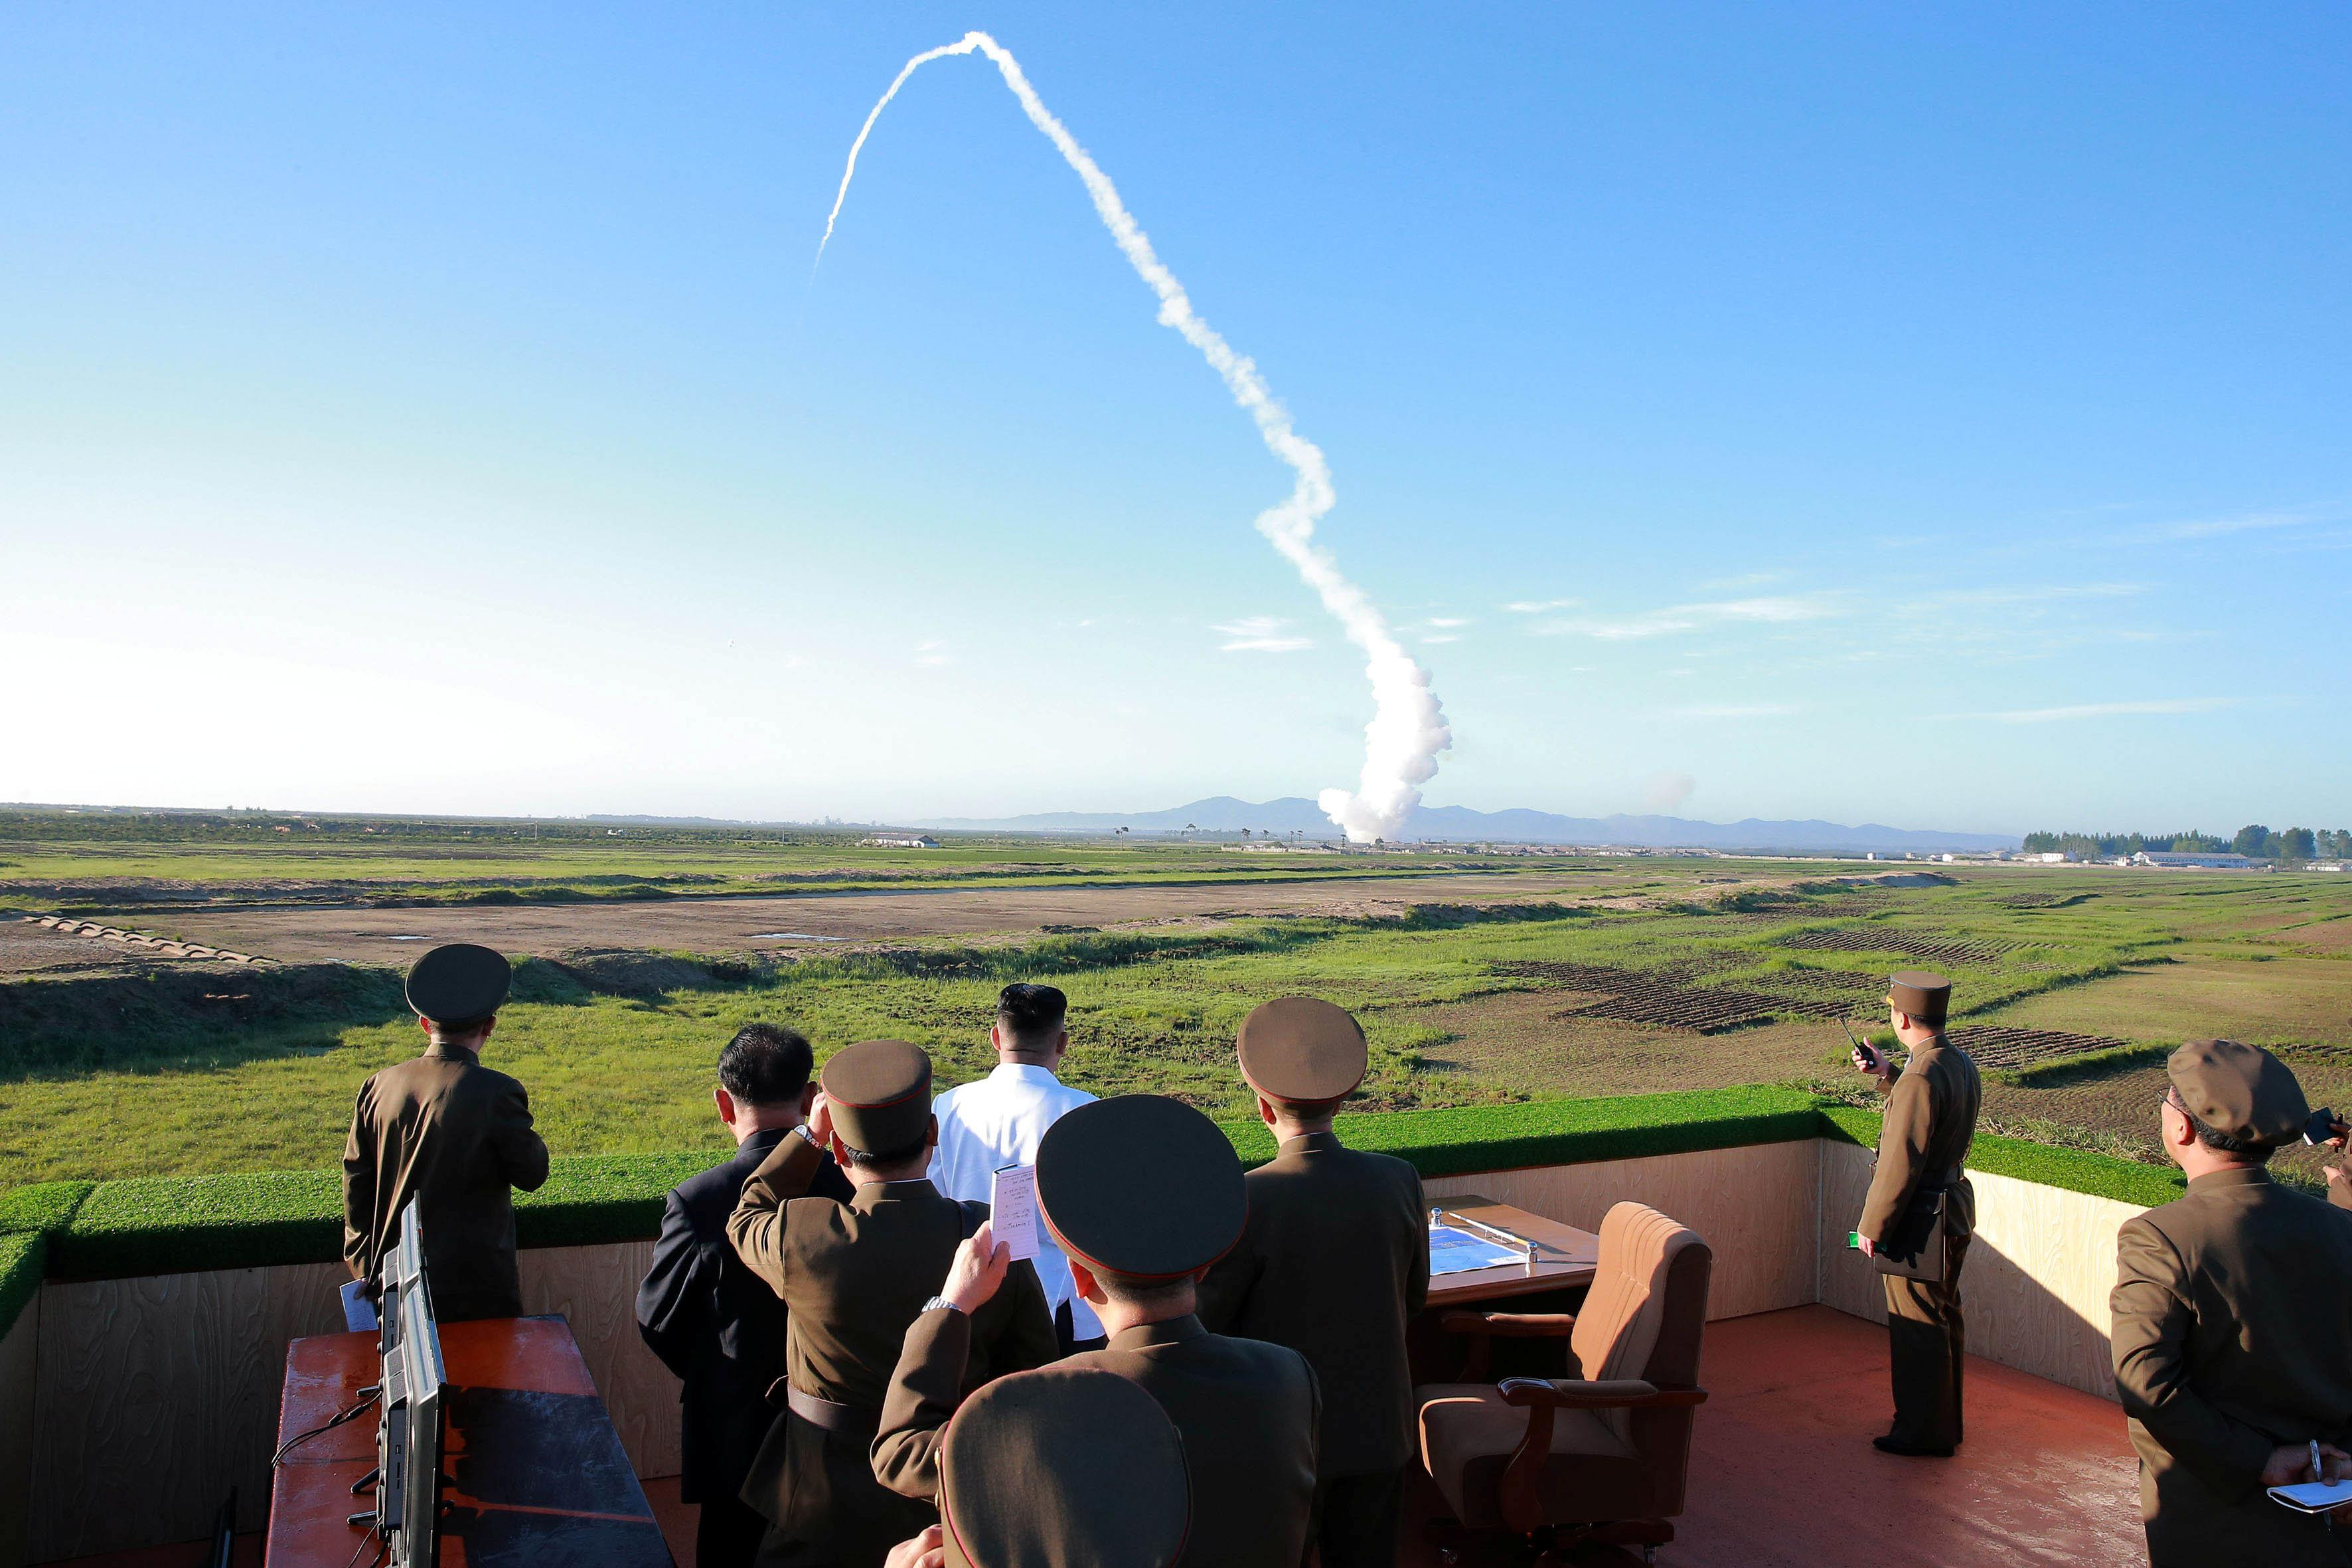 the north korean missile defense testing essay North korea missile essay build and test nuclear weapons while north korea has been on the radar for nuclear activity since 1969 in defense of nuclear.